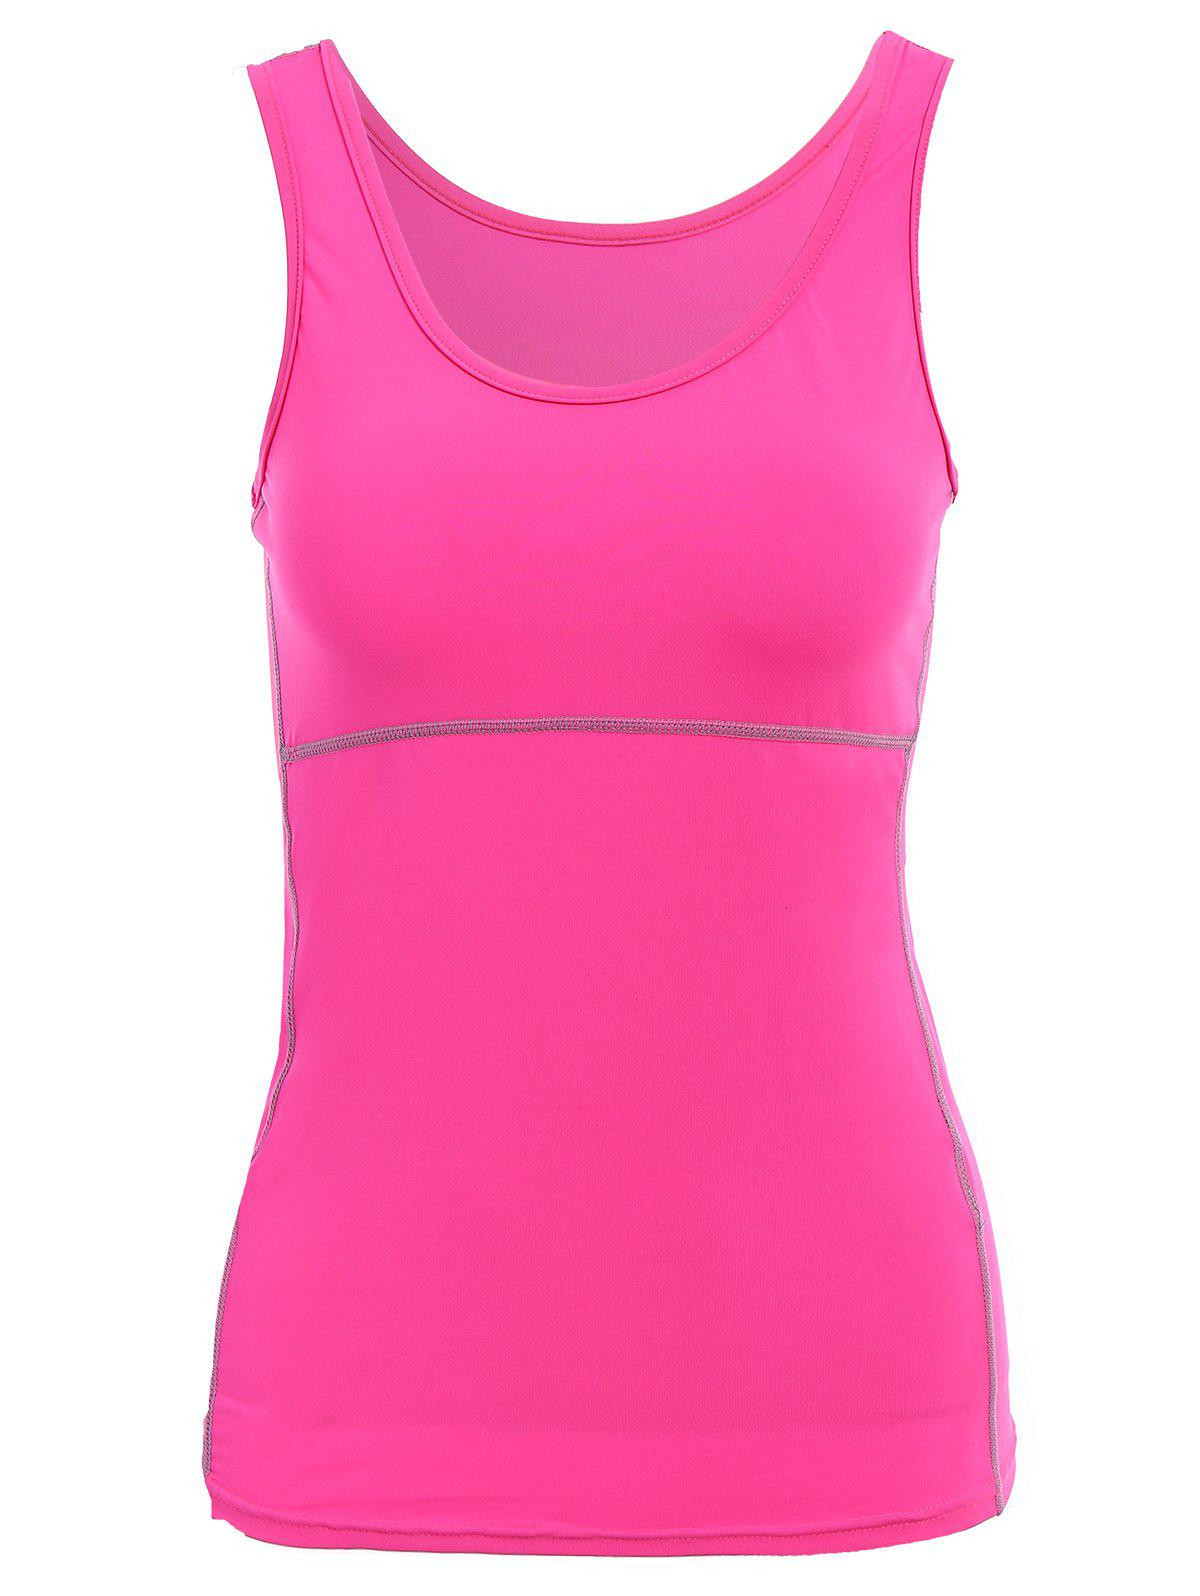 Active U Neck Stretchy Women's Yoga Tank Top - ROSE M